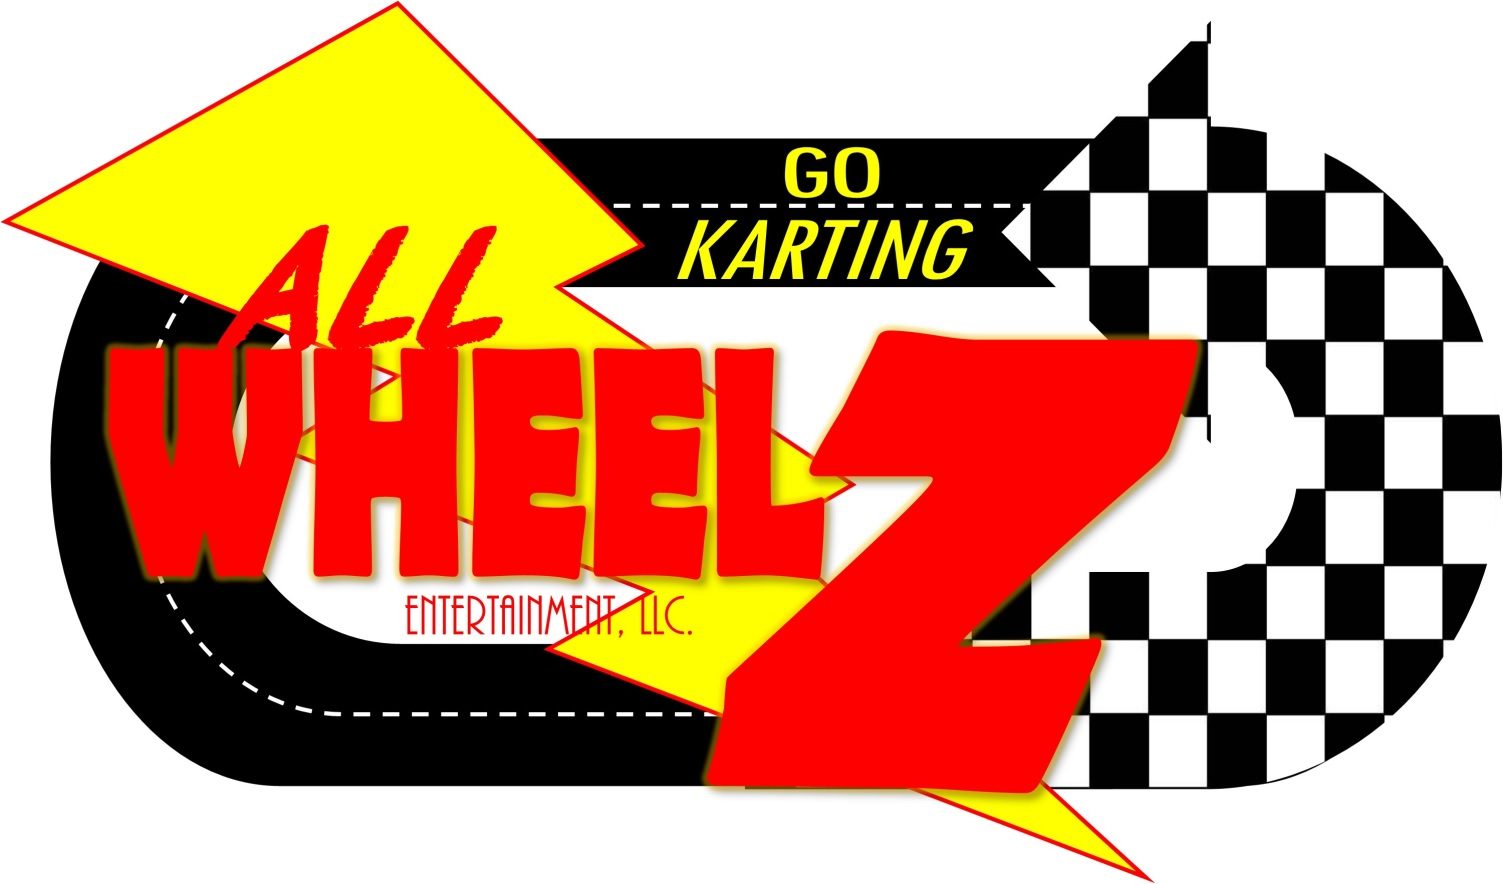 Go Karting - All Wheelz Entertainment